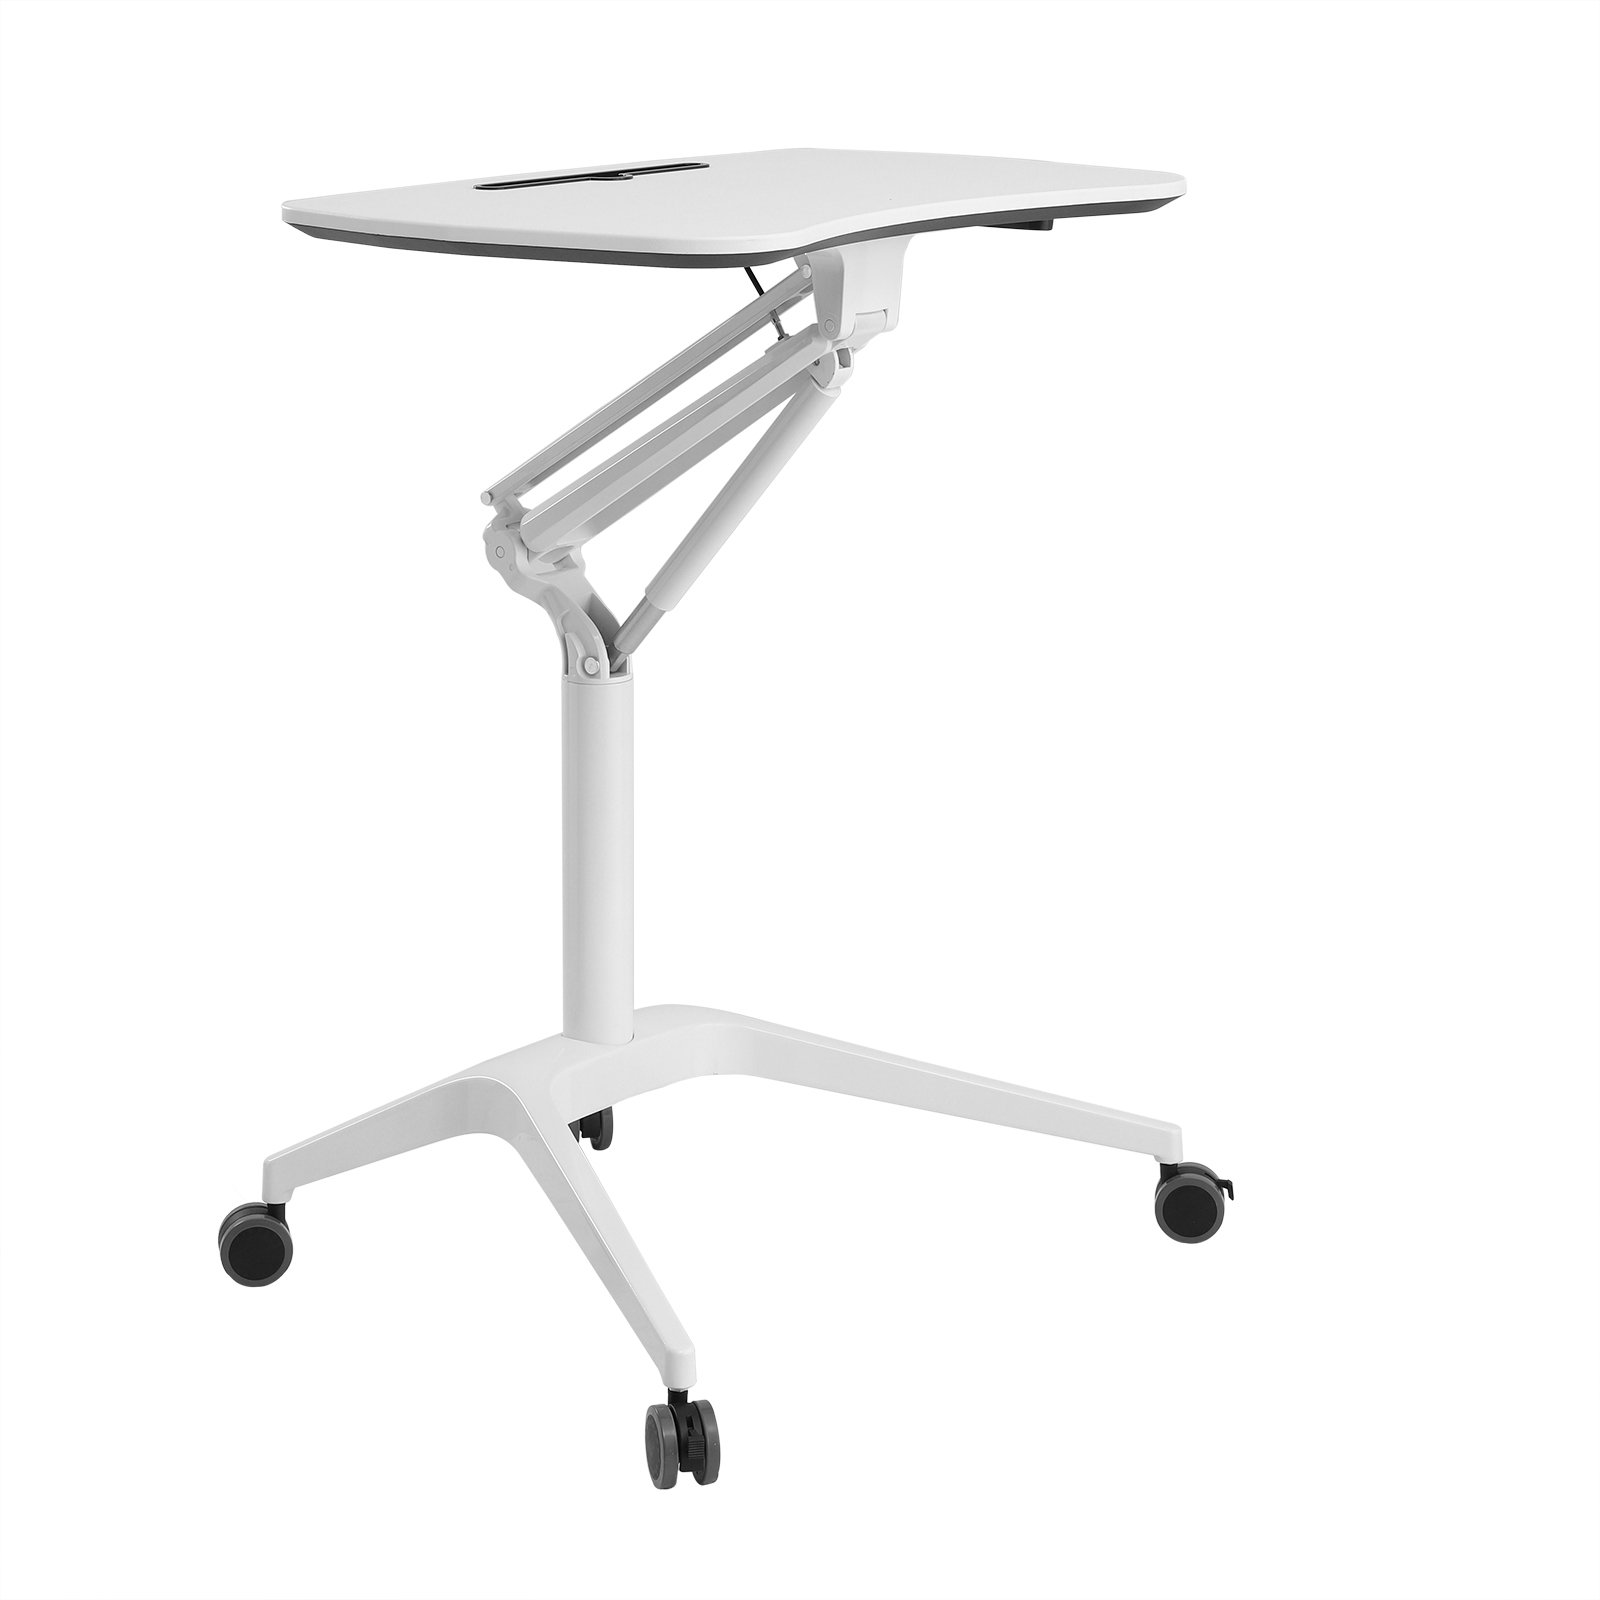 SONGMICS Mobile Laptop Desk Rolling Cart Table, Height Adjustable Standing Table with Gas Spring and Casters, 28.1''W Top Laptop Computer Desk for Home Office, White ULAD02WT by SONGMICS